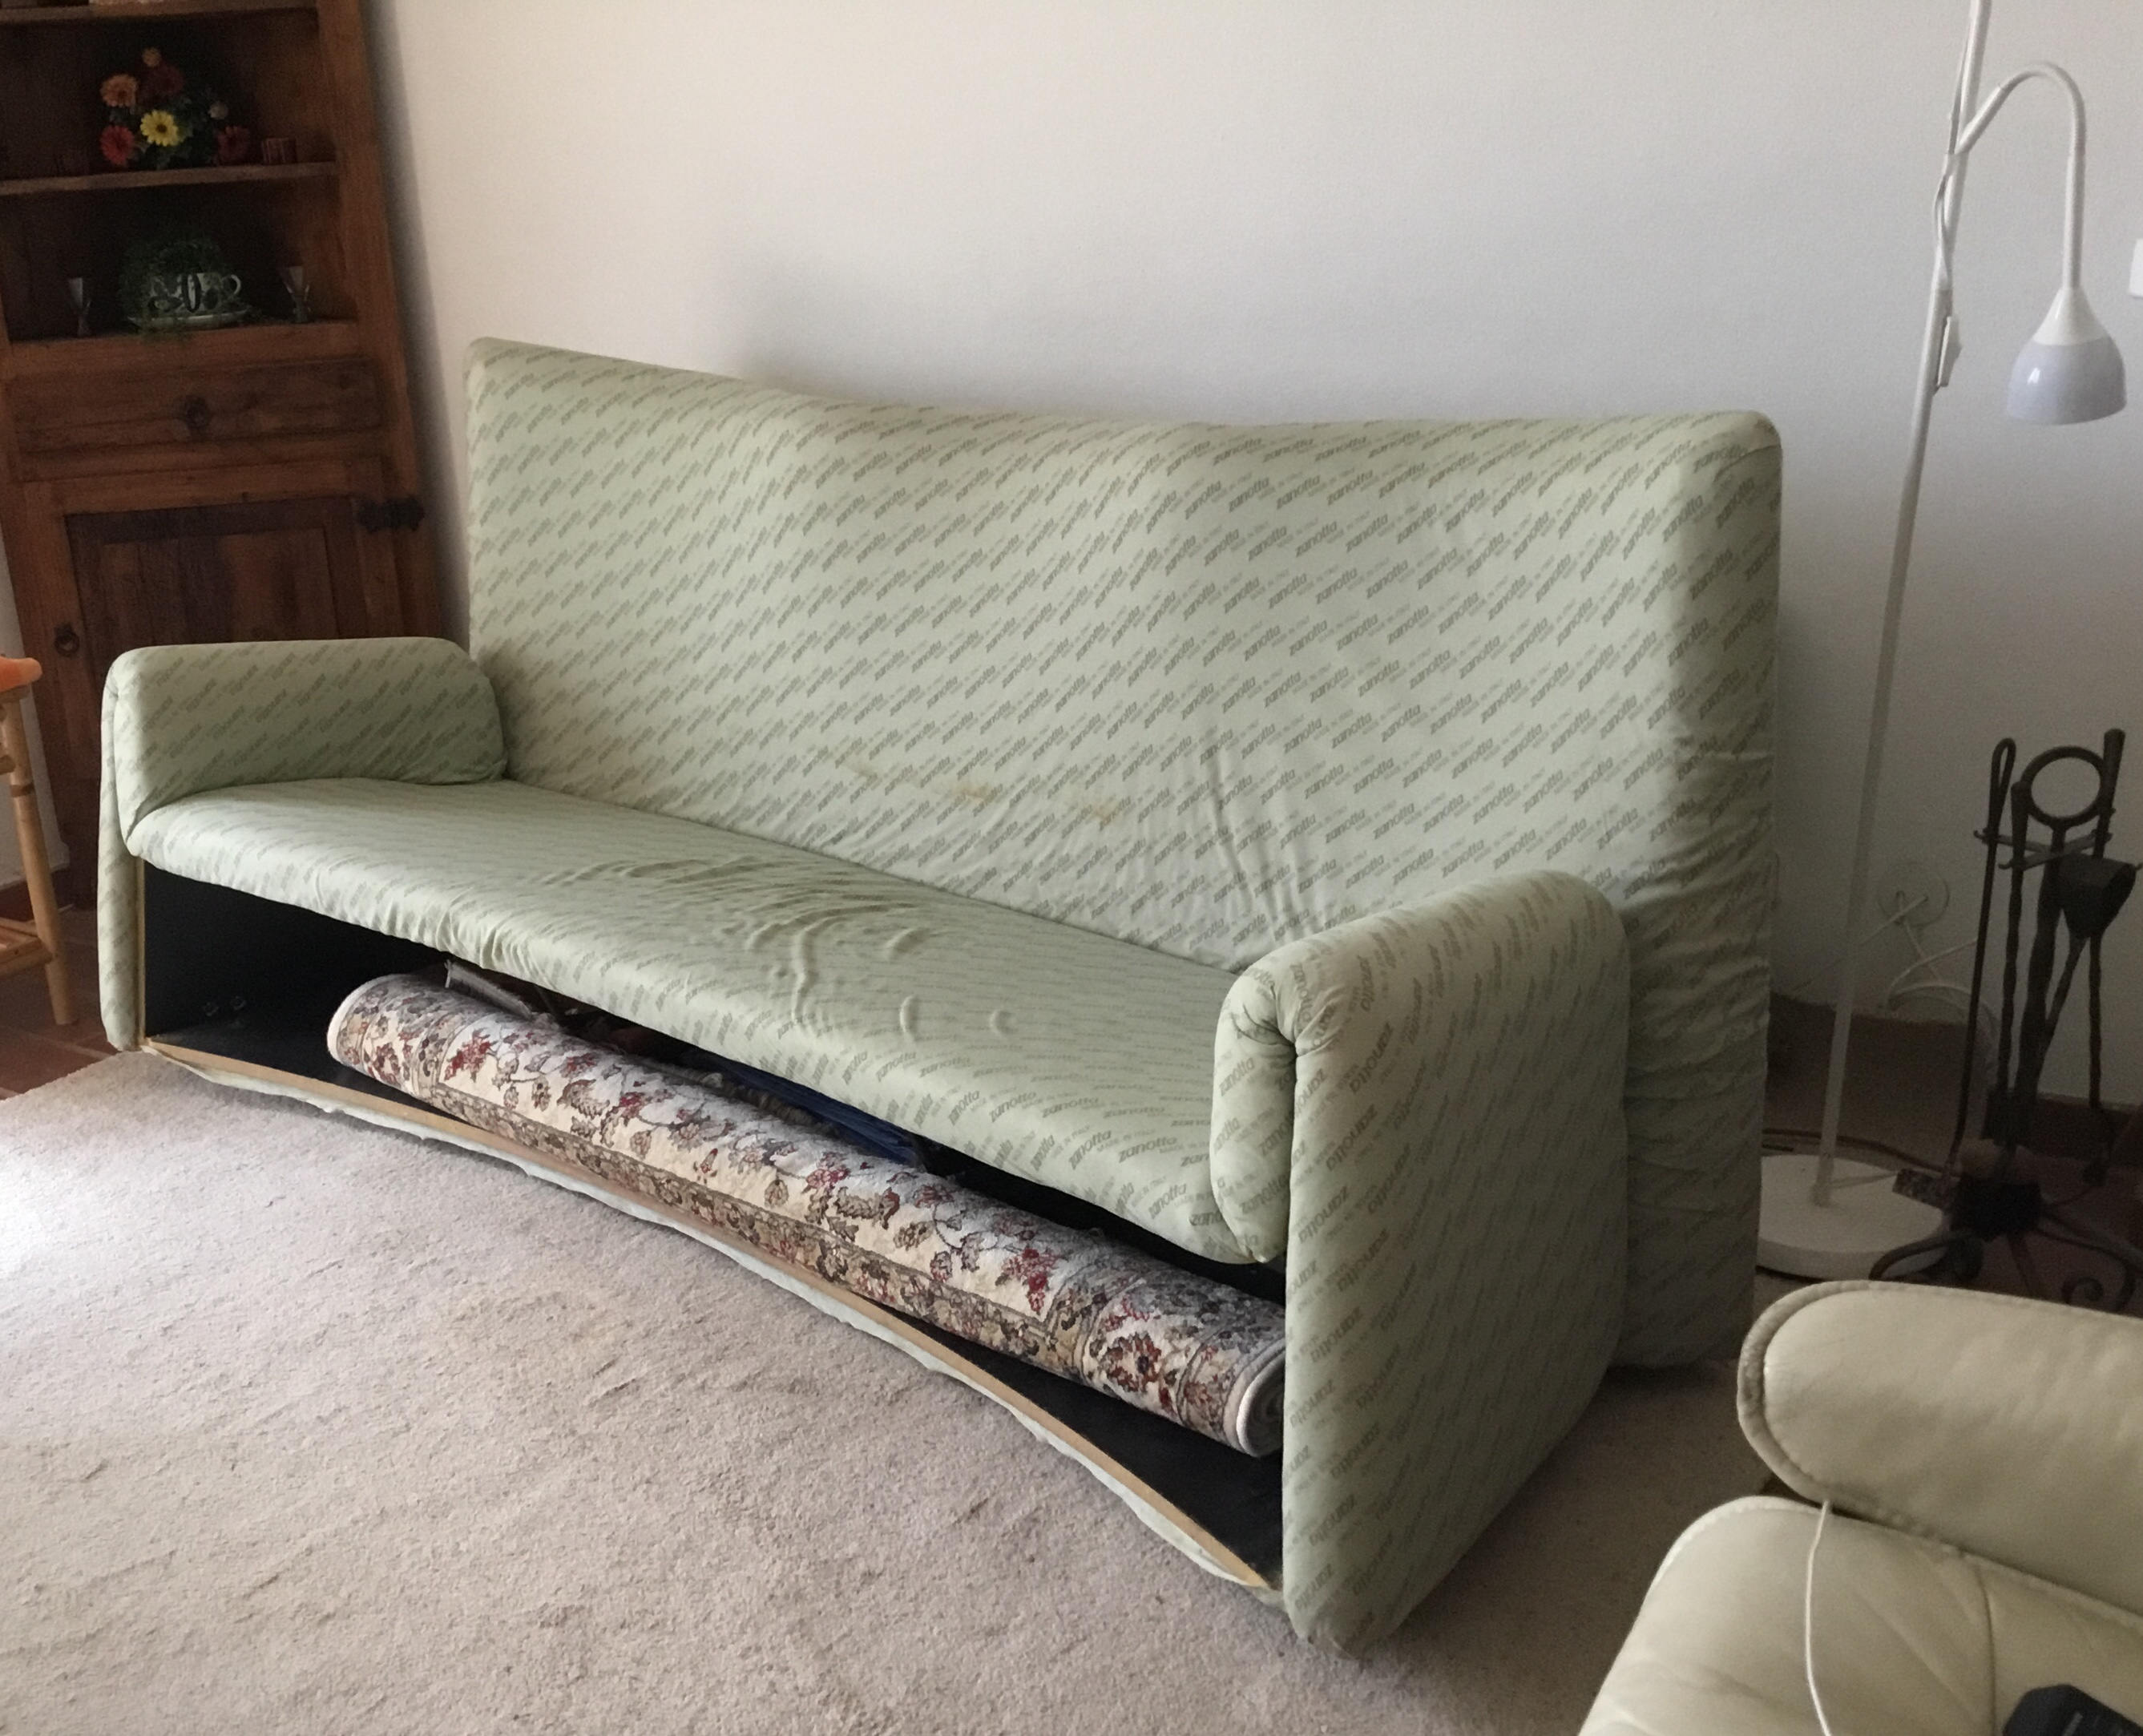 Italian Settee without it's cover.